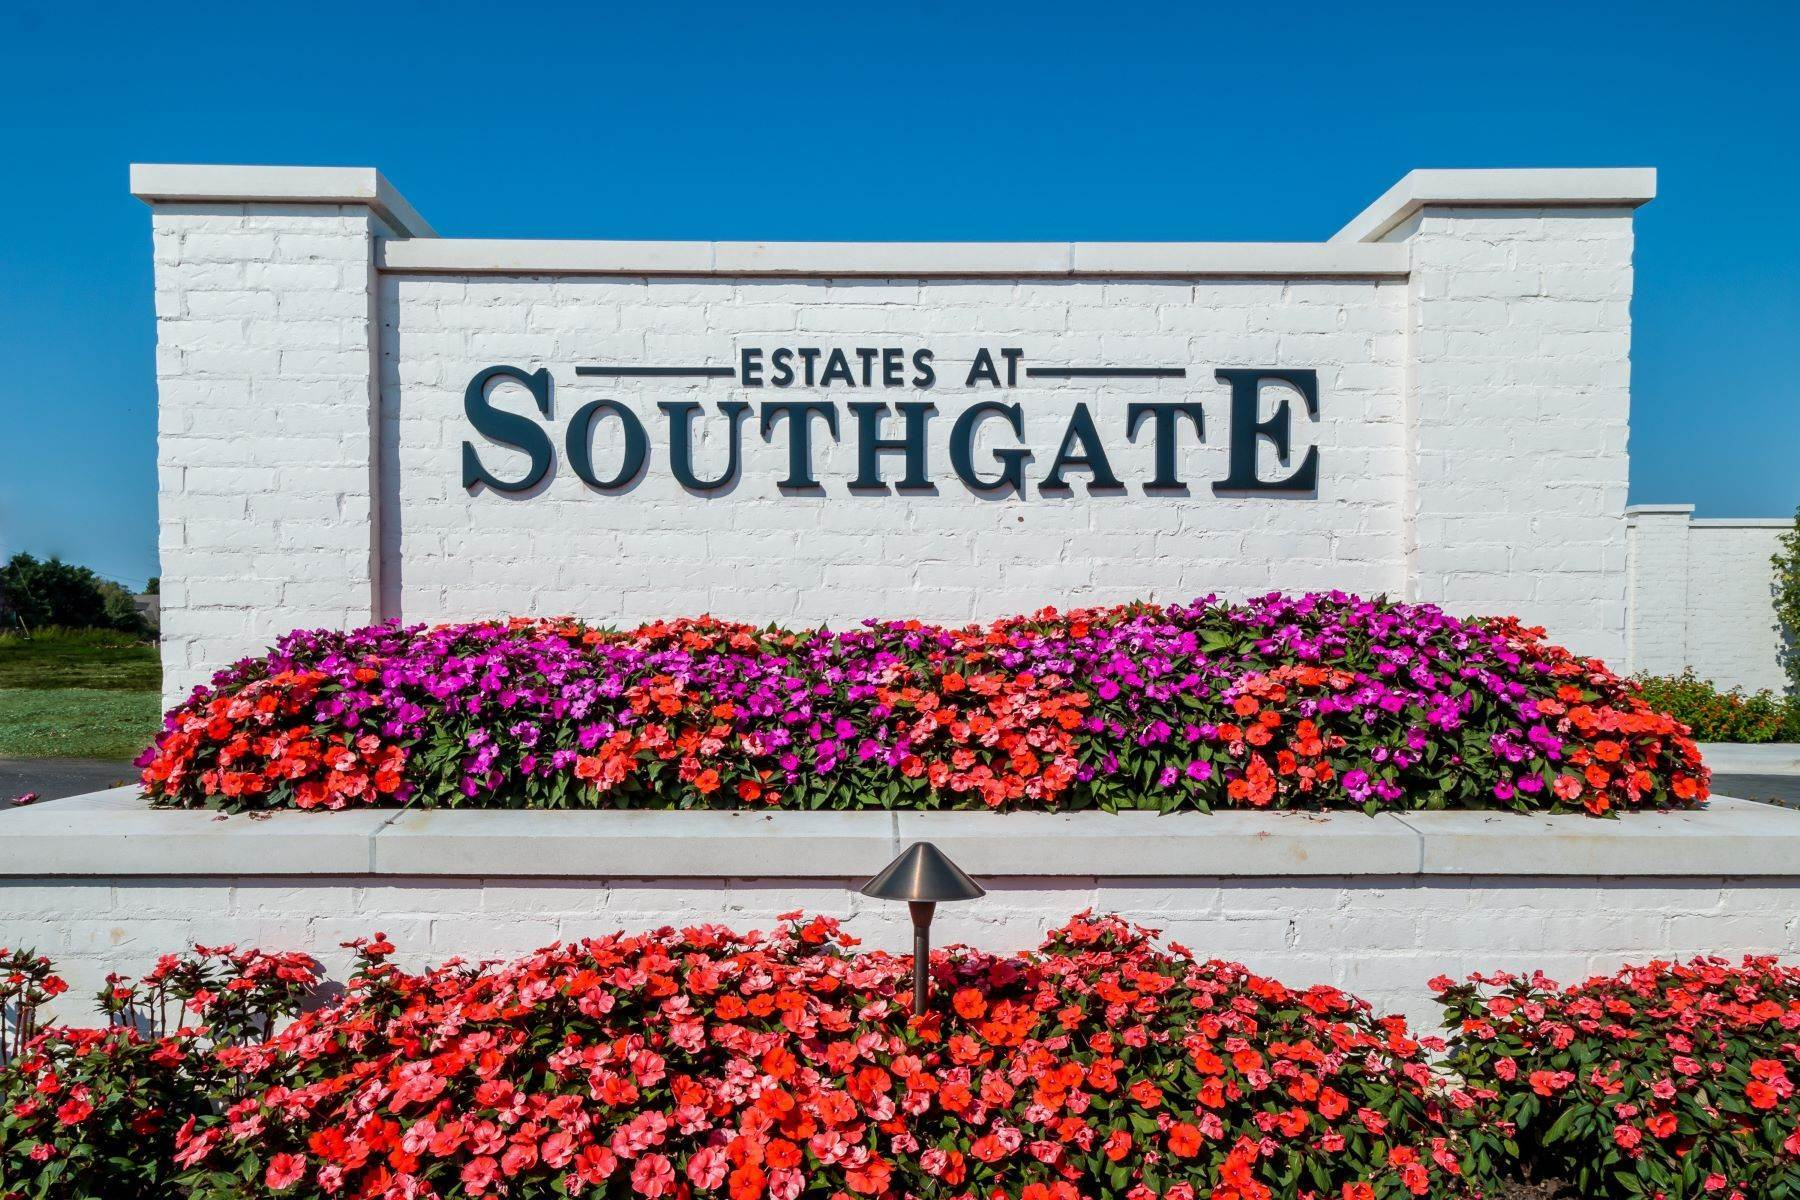 Land for Sale at Lot 24 Estates at Southgate 4815 Southgate Estates Circle Rogers, Arkansas 72758 United States